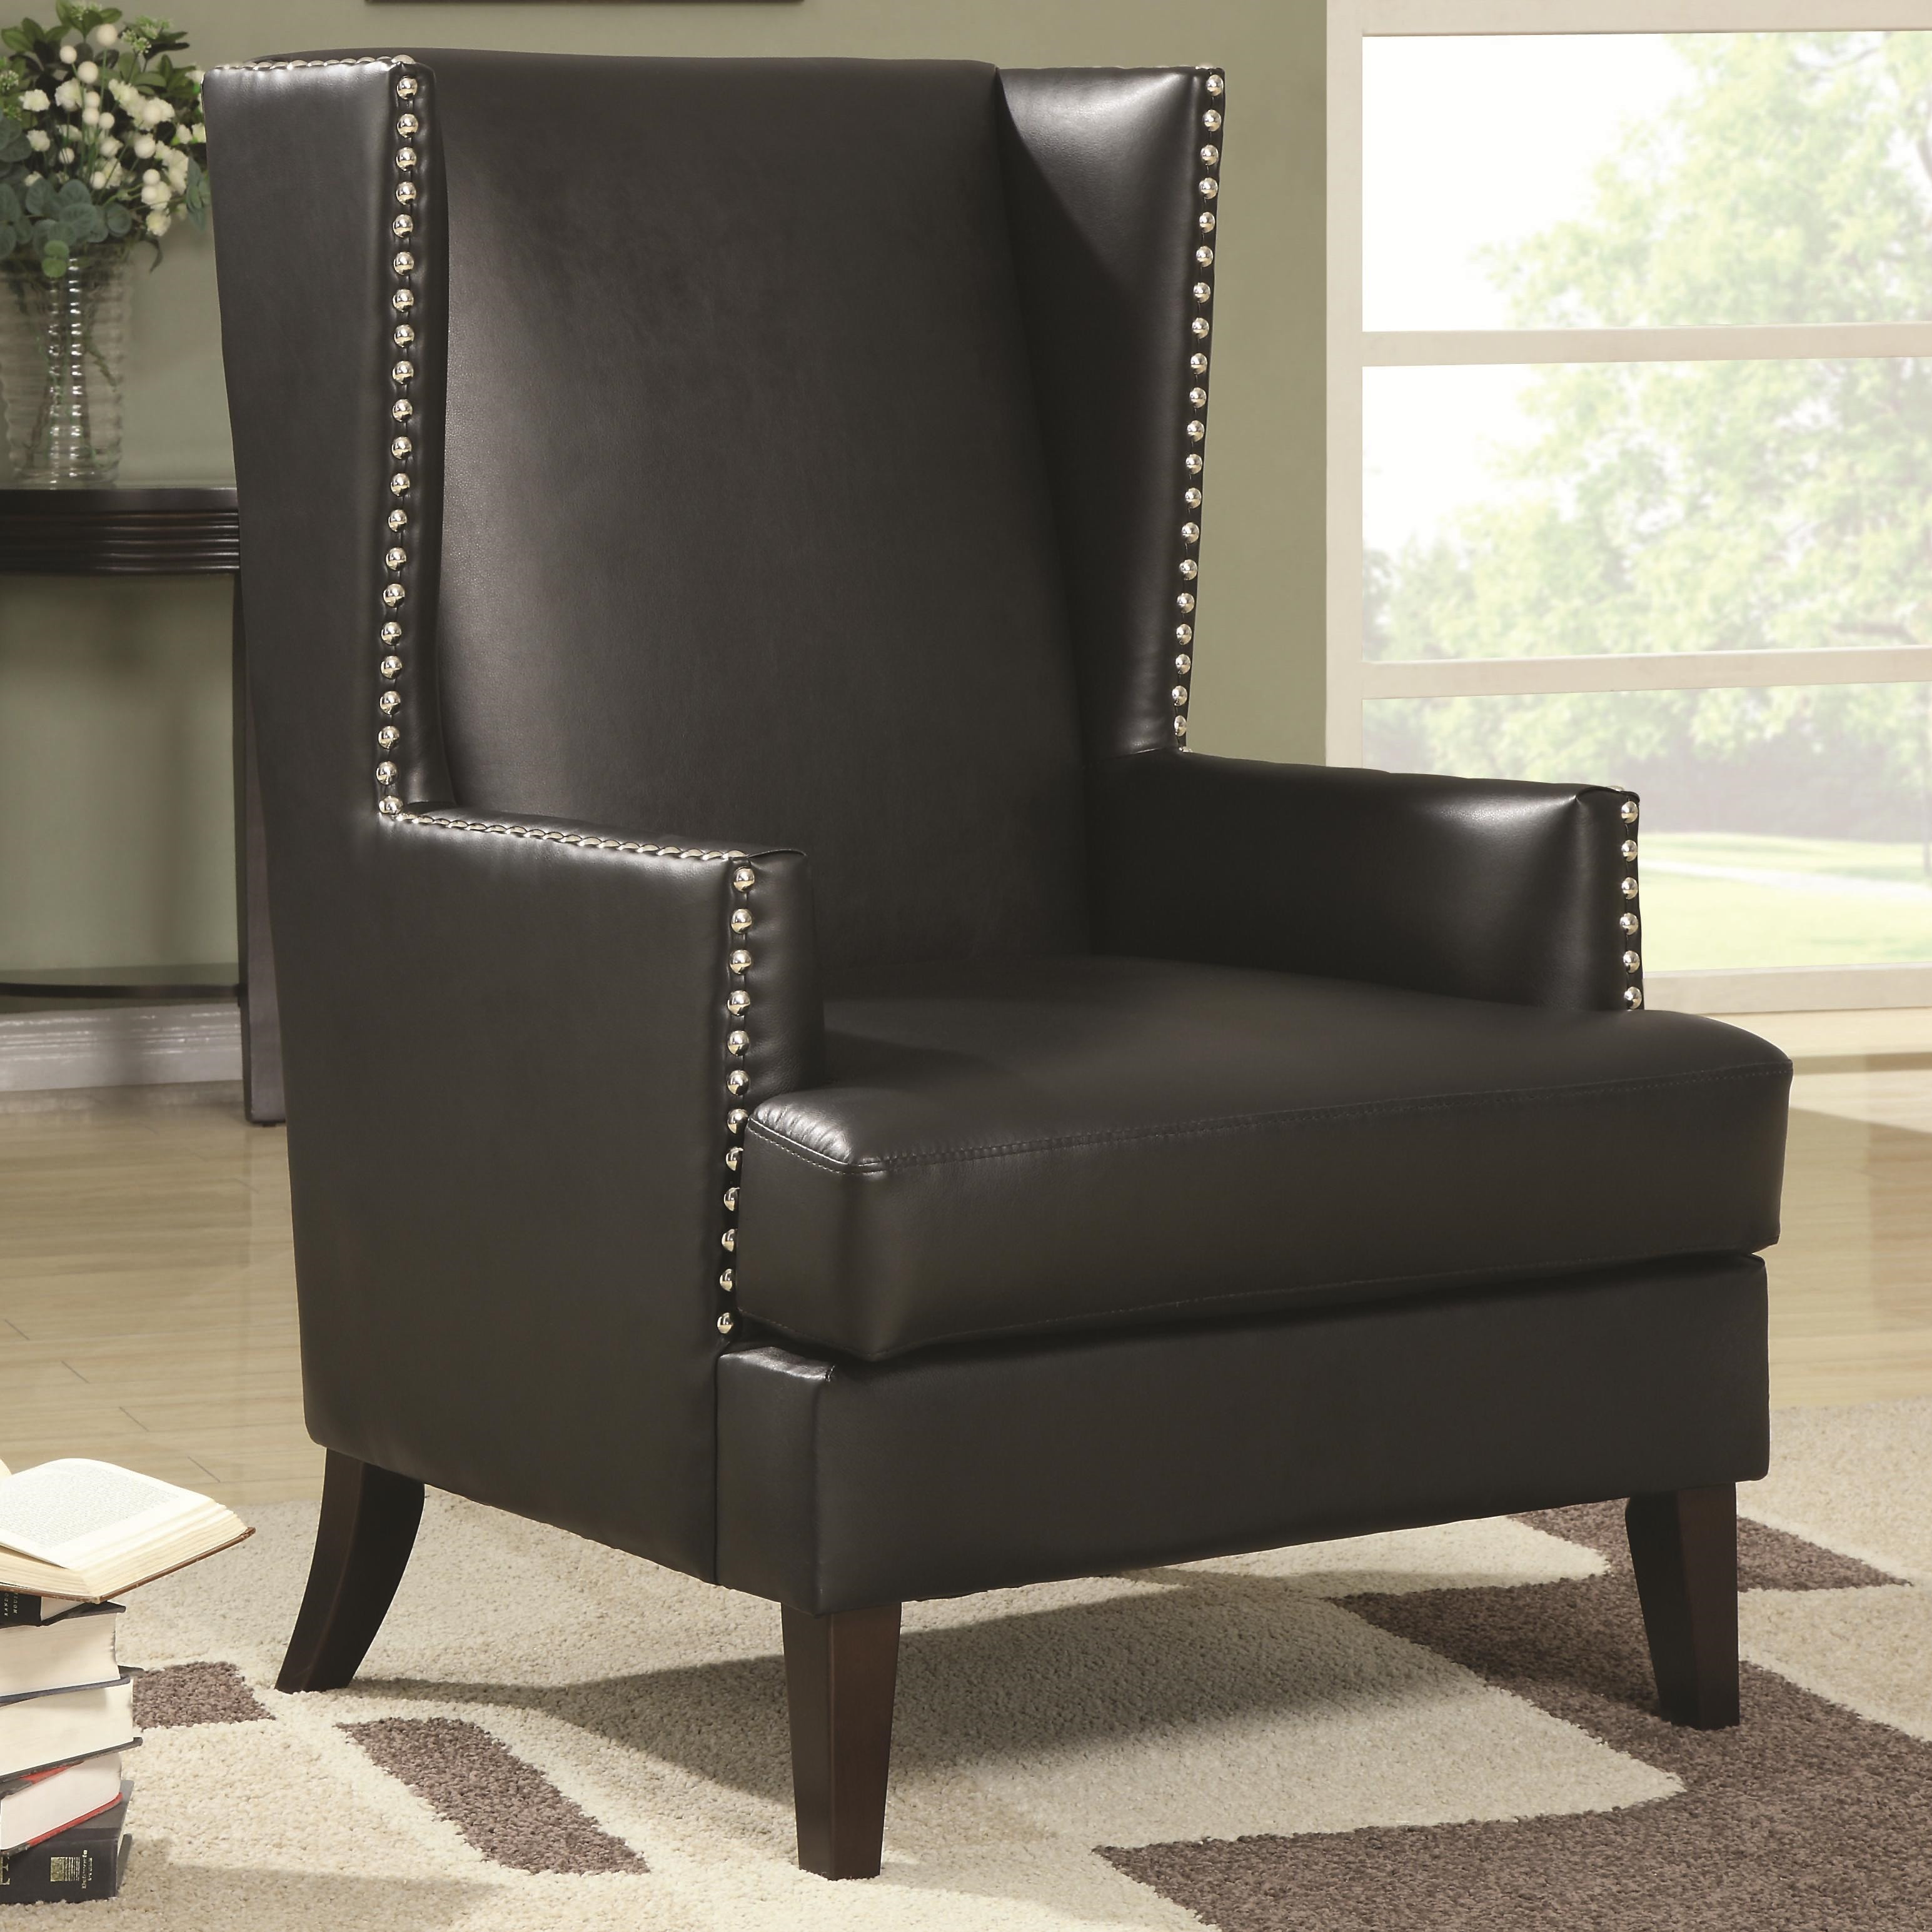 Charmant Coaster Accent Seating Wing Back Accent Chair In Transitional Furniture  Style With Nail Head Trim